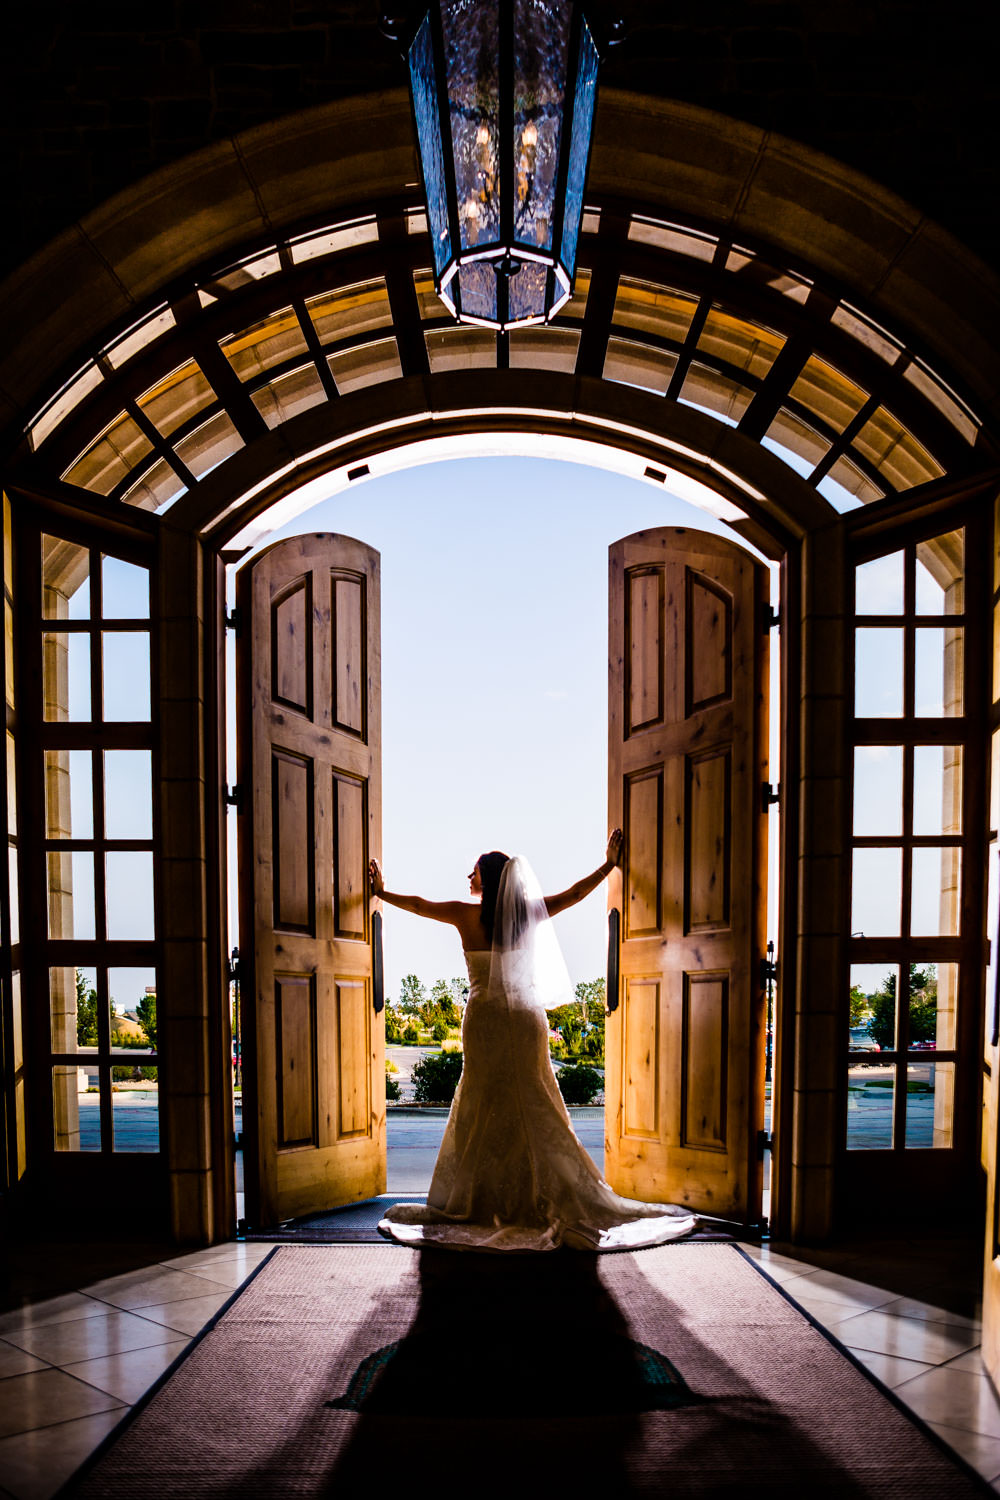 Blackstone Country Club wedding by JMGant Photography. I absolutely LOVE the front door of this place!